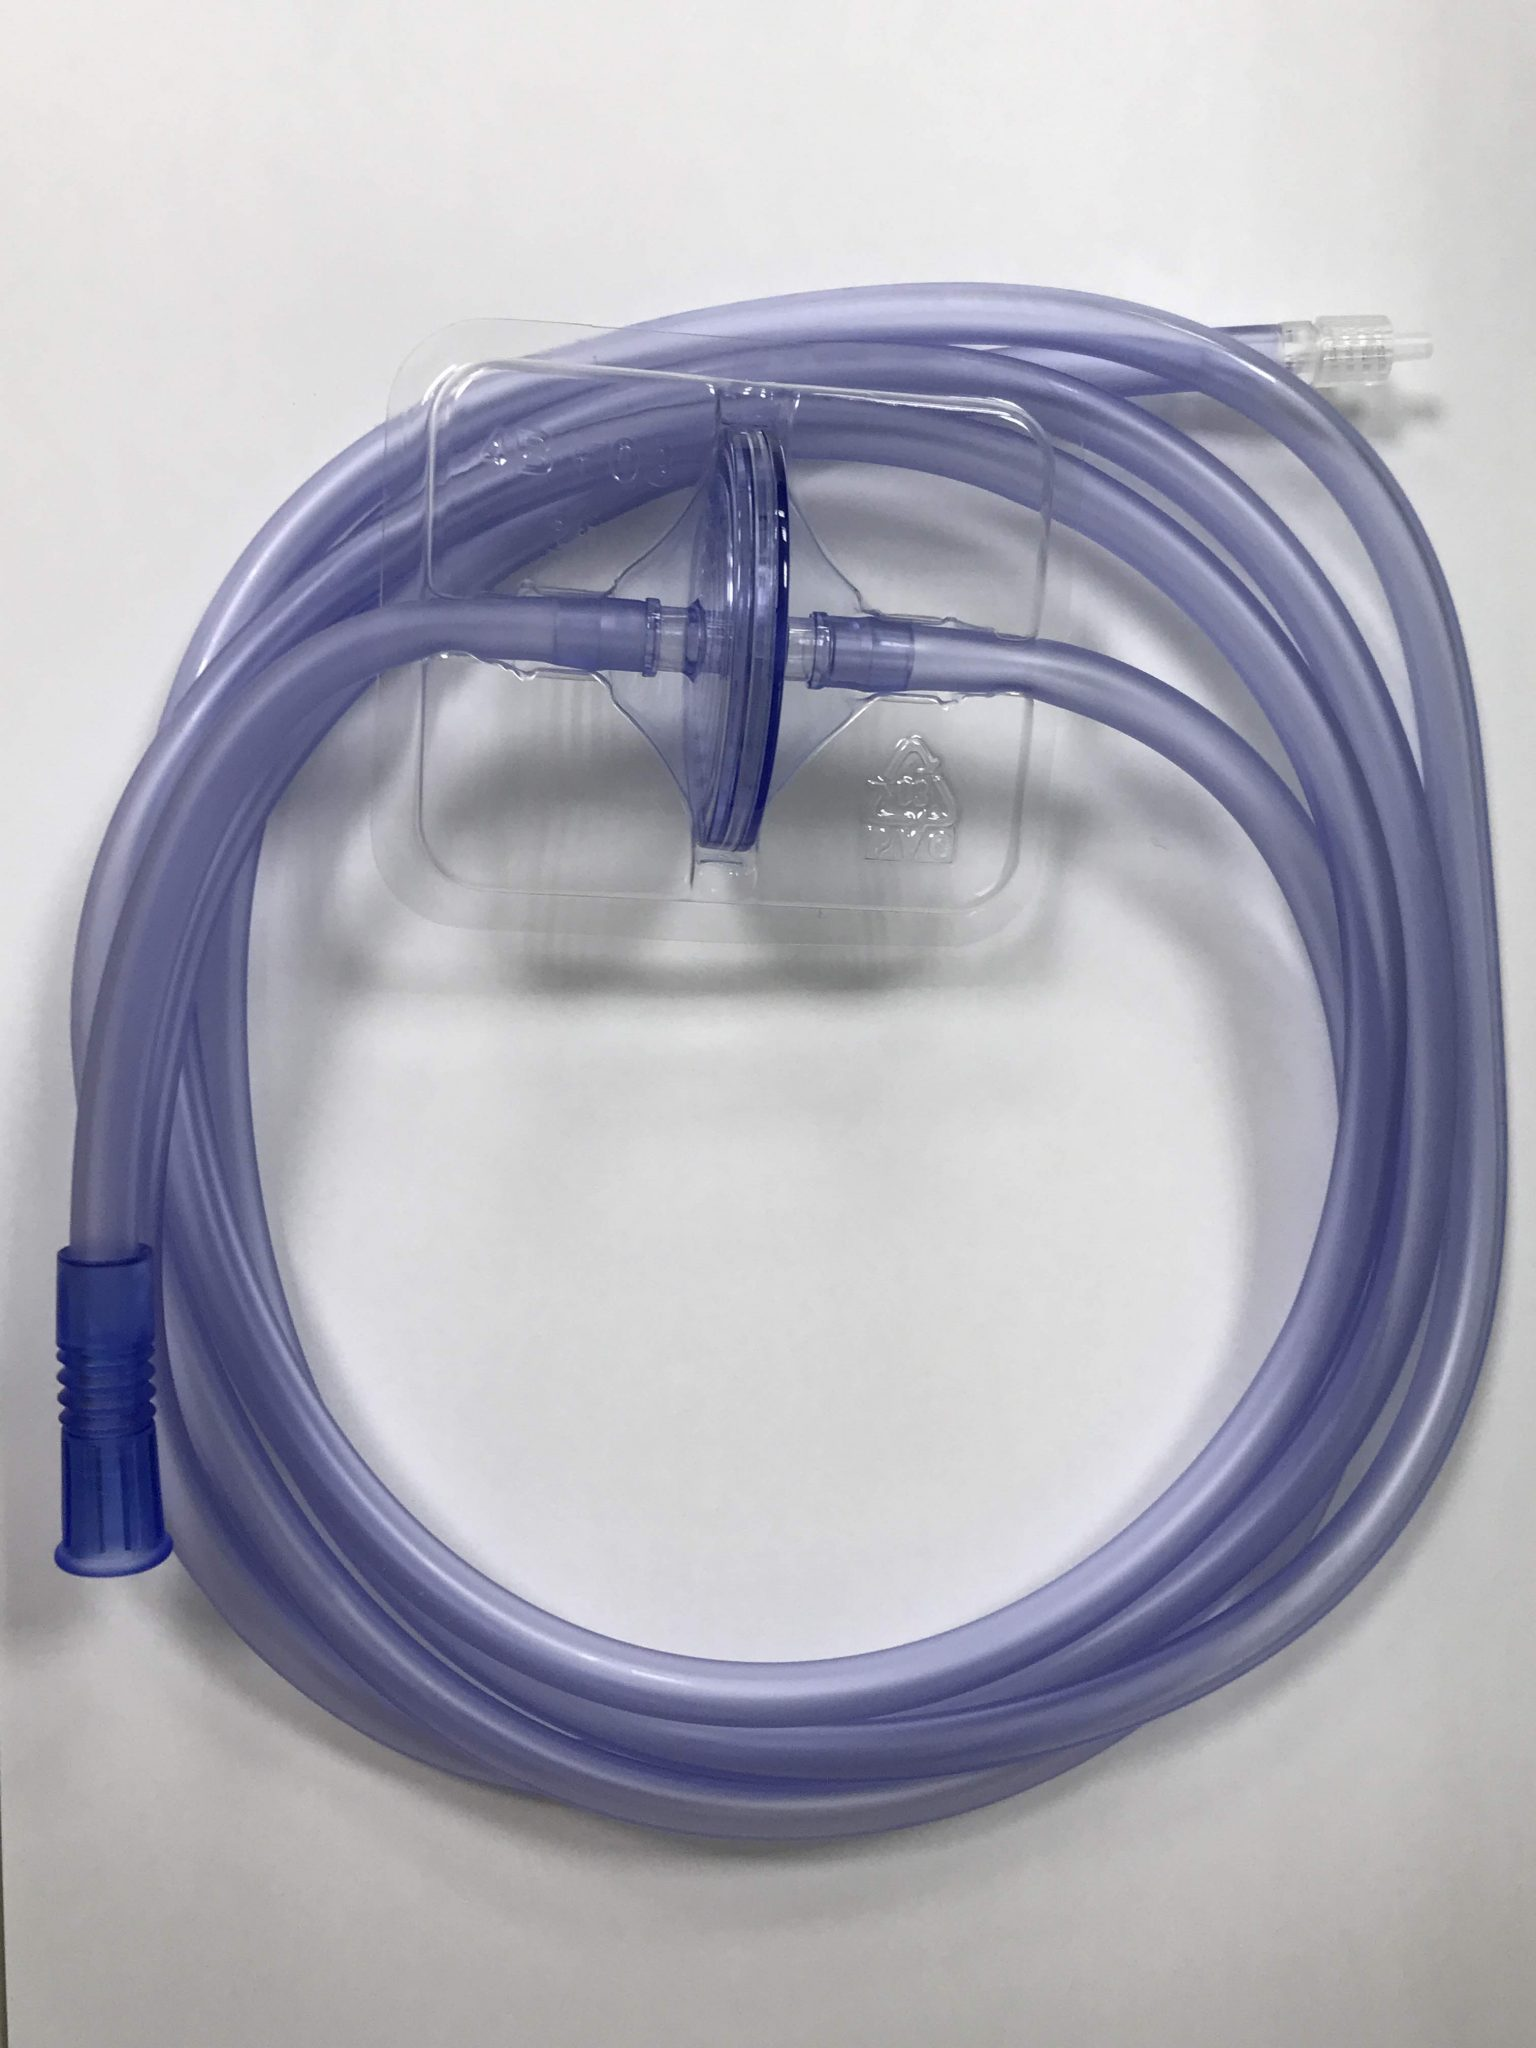 Insufflation Tubing Kits & Particulate Filters image